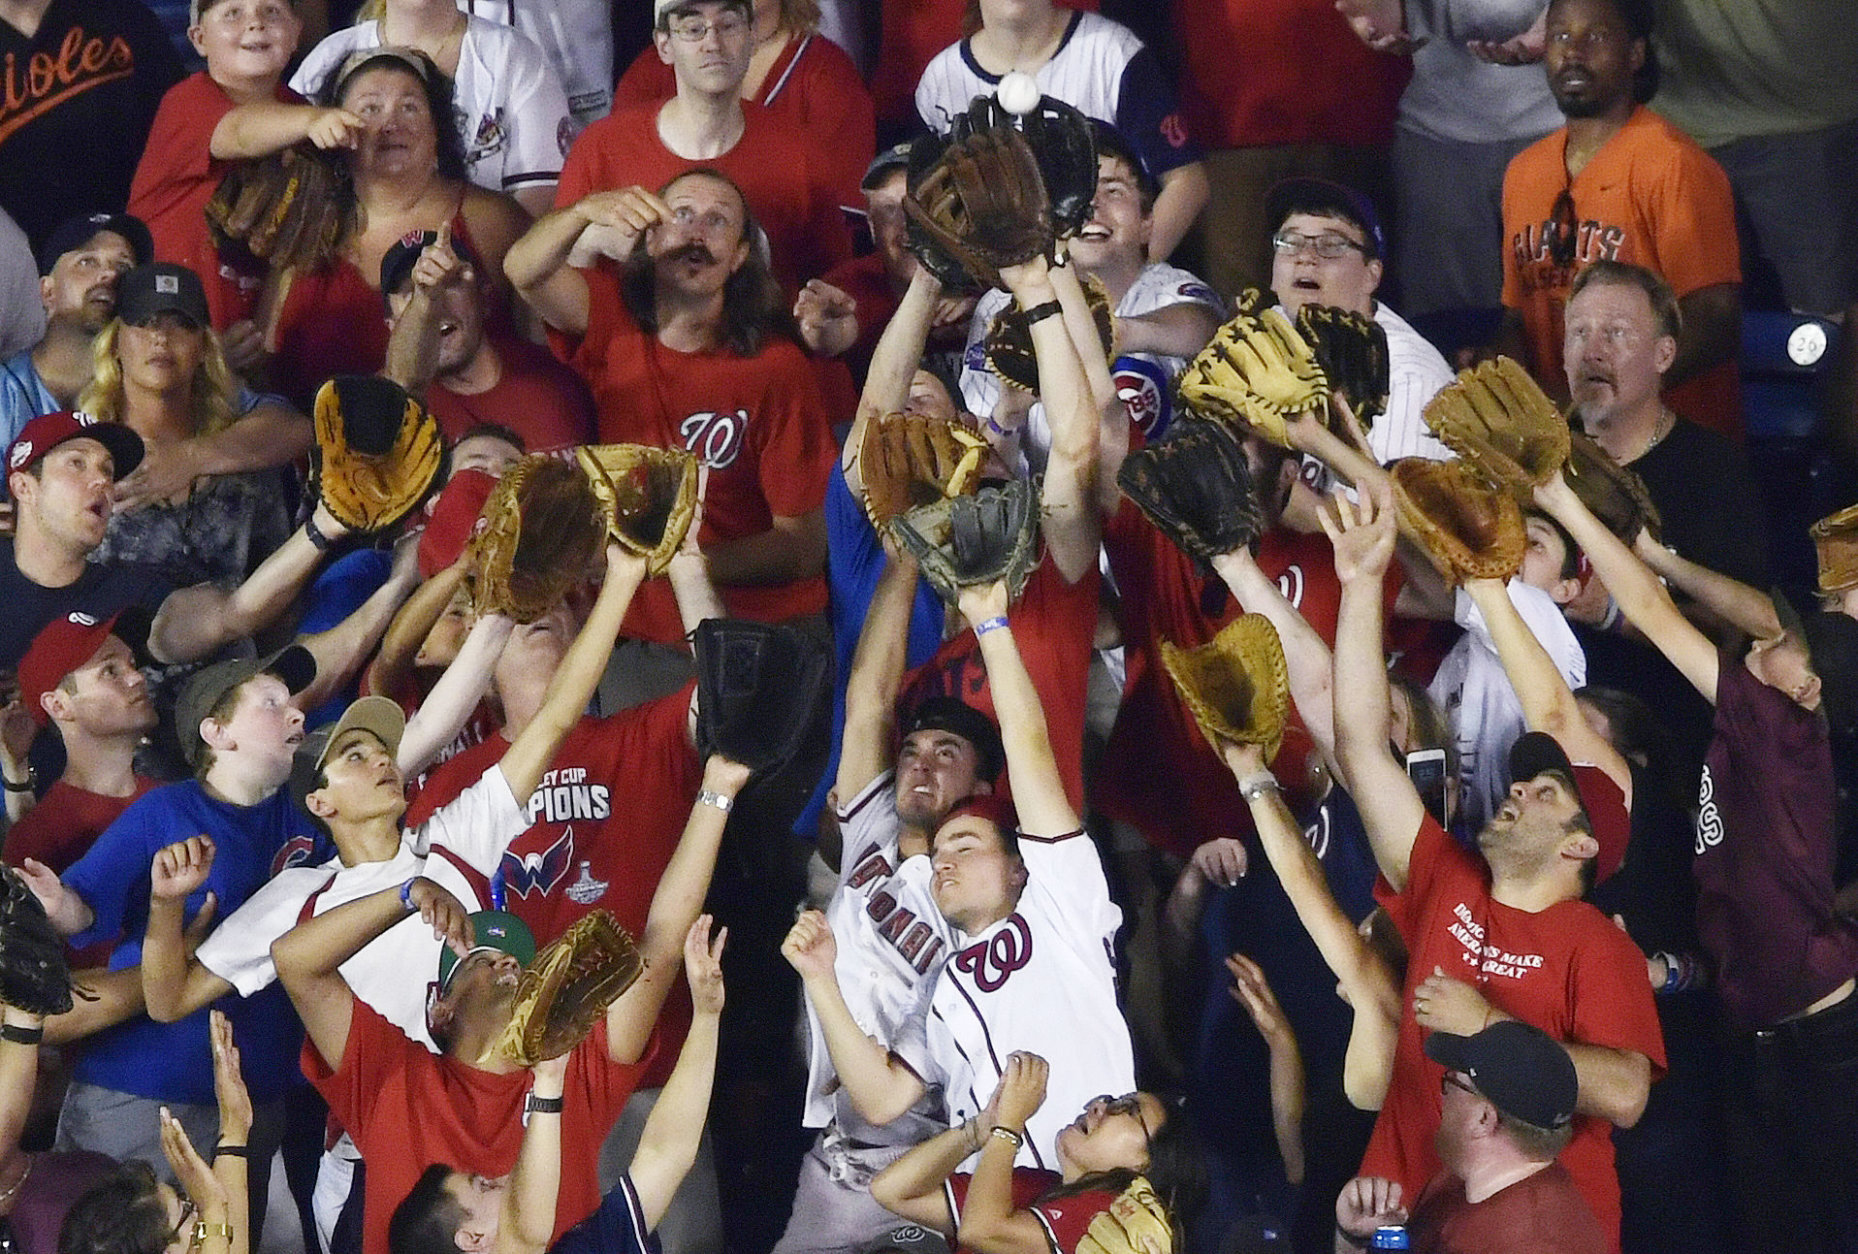 Fans reach for a home run ball during the MLB Home Run Derby, at Nationals Park, Monday, July 16, 2018 in Washington. The 89th MLB baseball All-Star Game will be played Tuesday. (AP Photo/Susan Walsh)